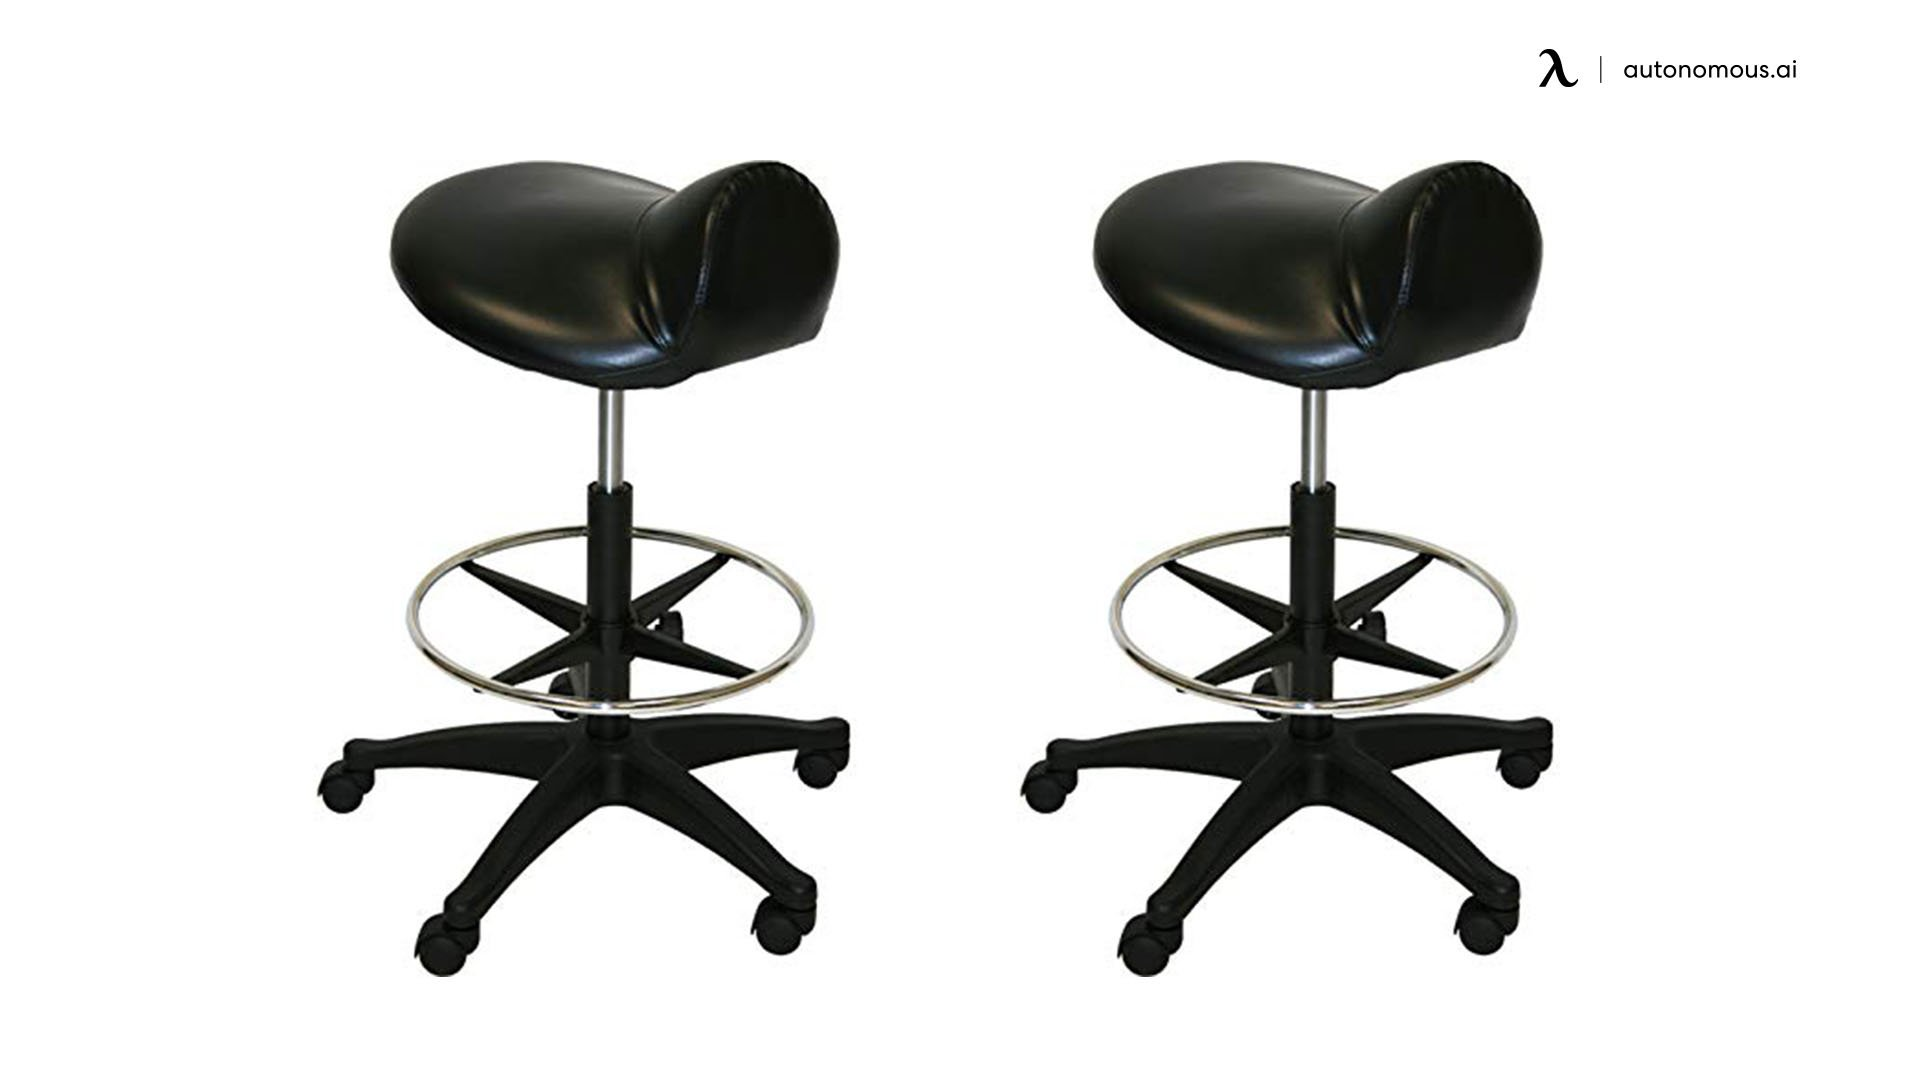 Extra Large Deluxe Saddle Stool by LCL Beauty